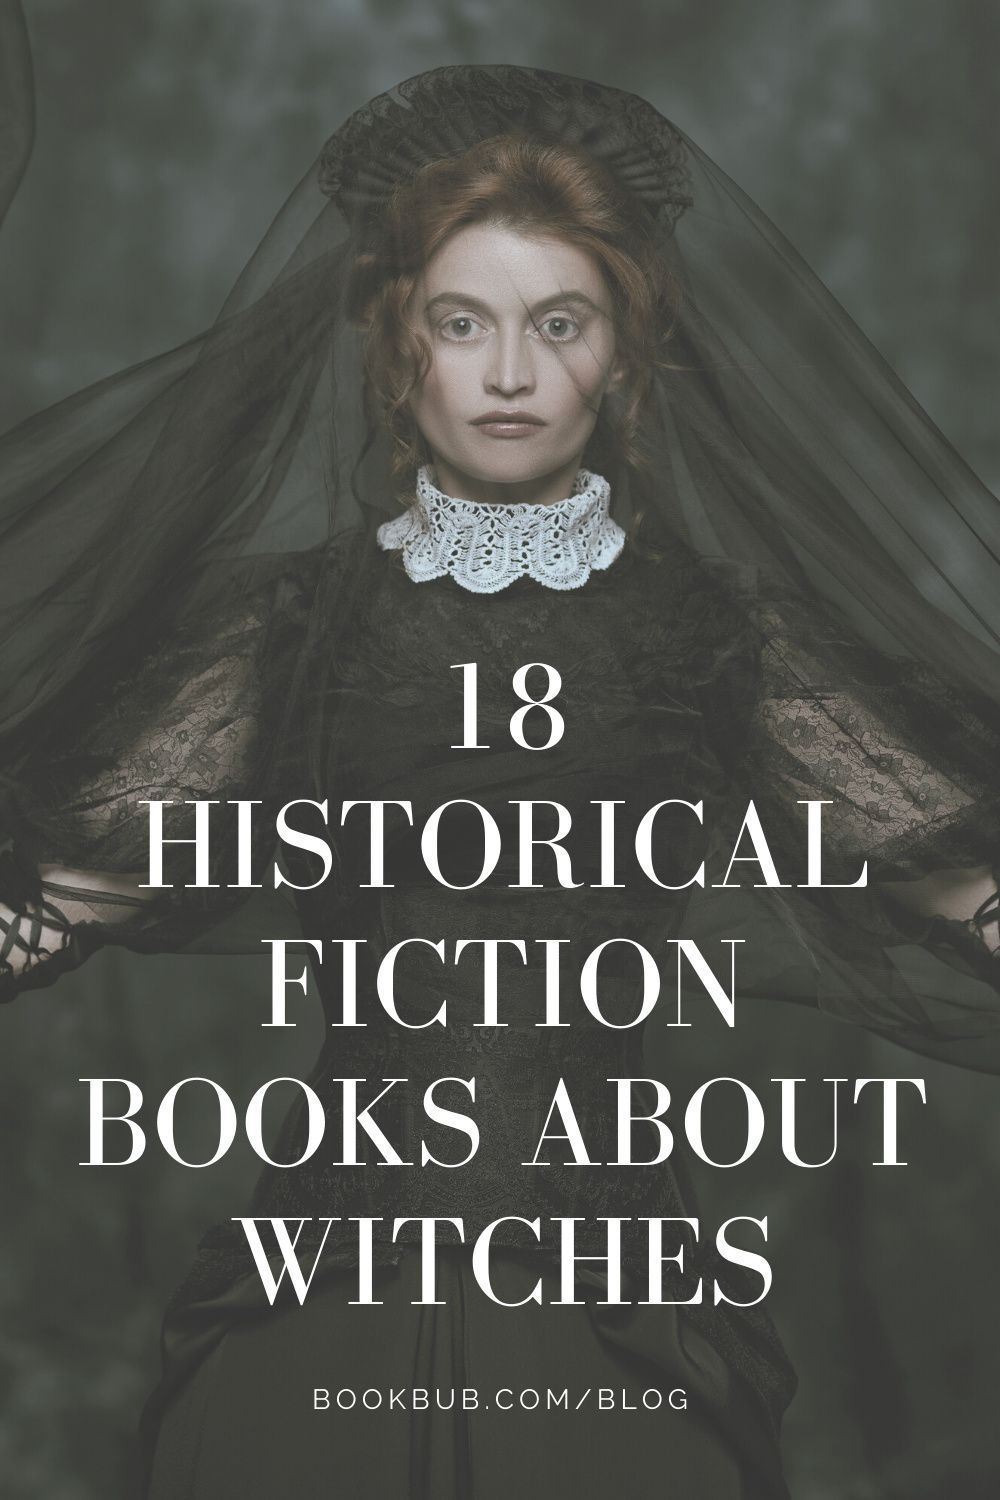 18 Historical Fiction Books About Witches